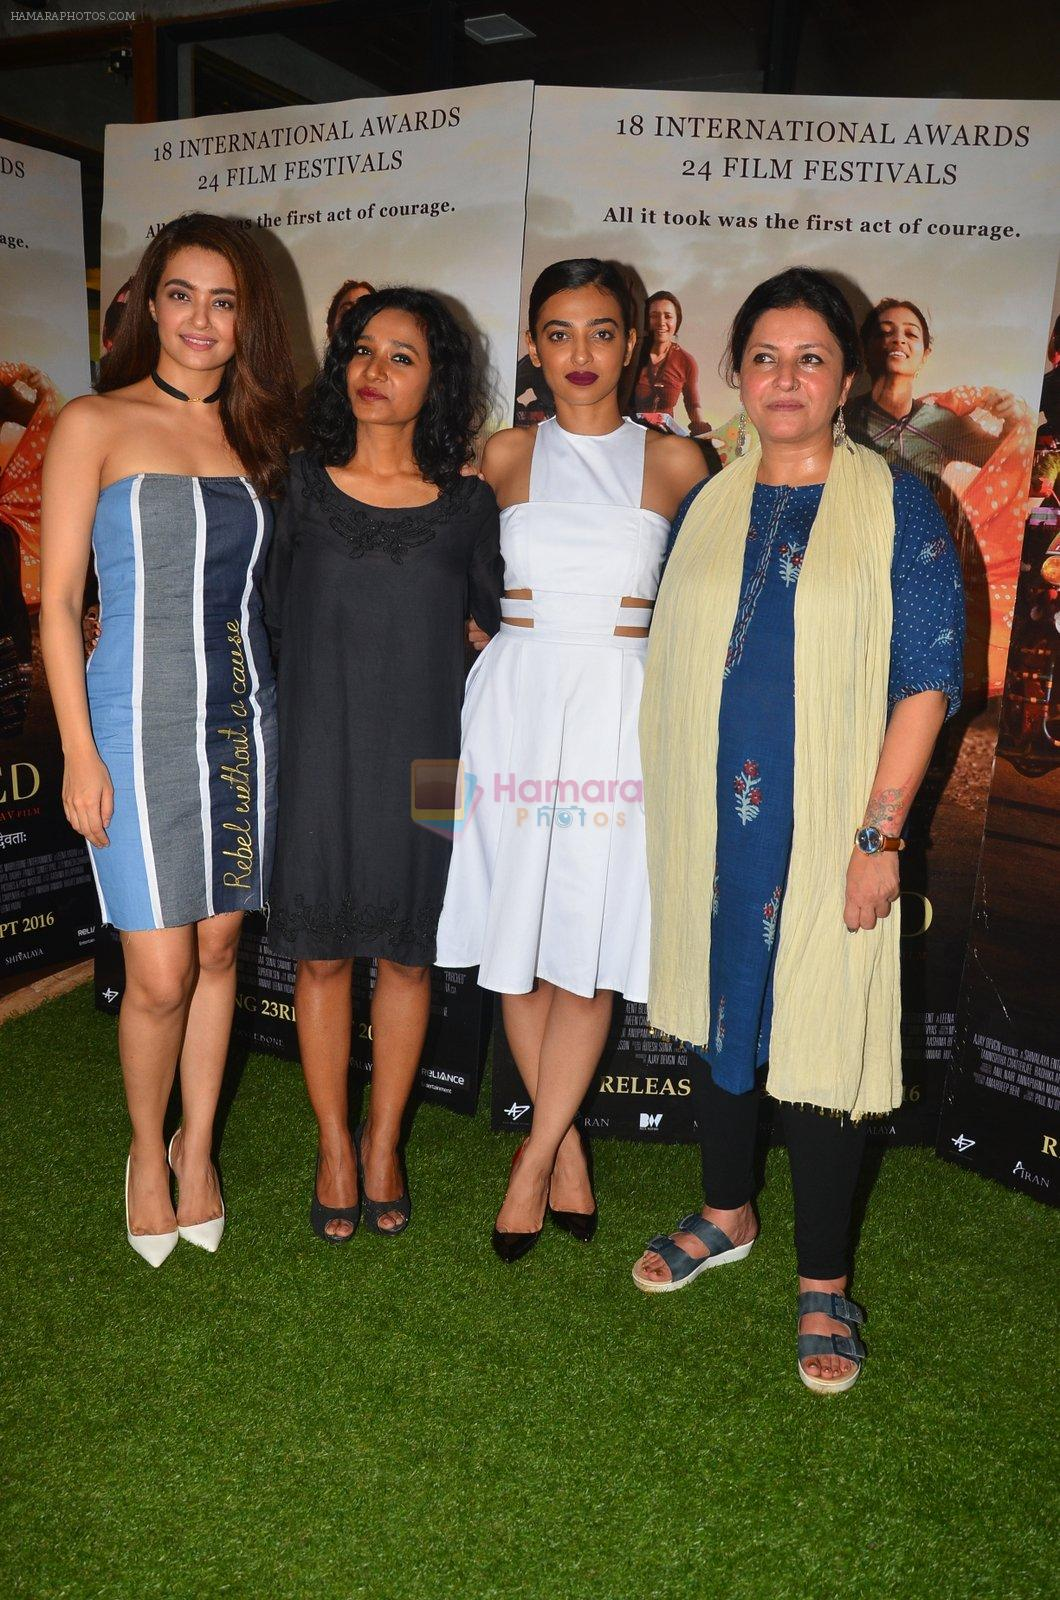 Surveen Chawla, Tannishtha Chatterjee, Radhika Apte, Leena Yadav at Parched Photoshoot on 17th Sept 2016